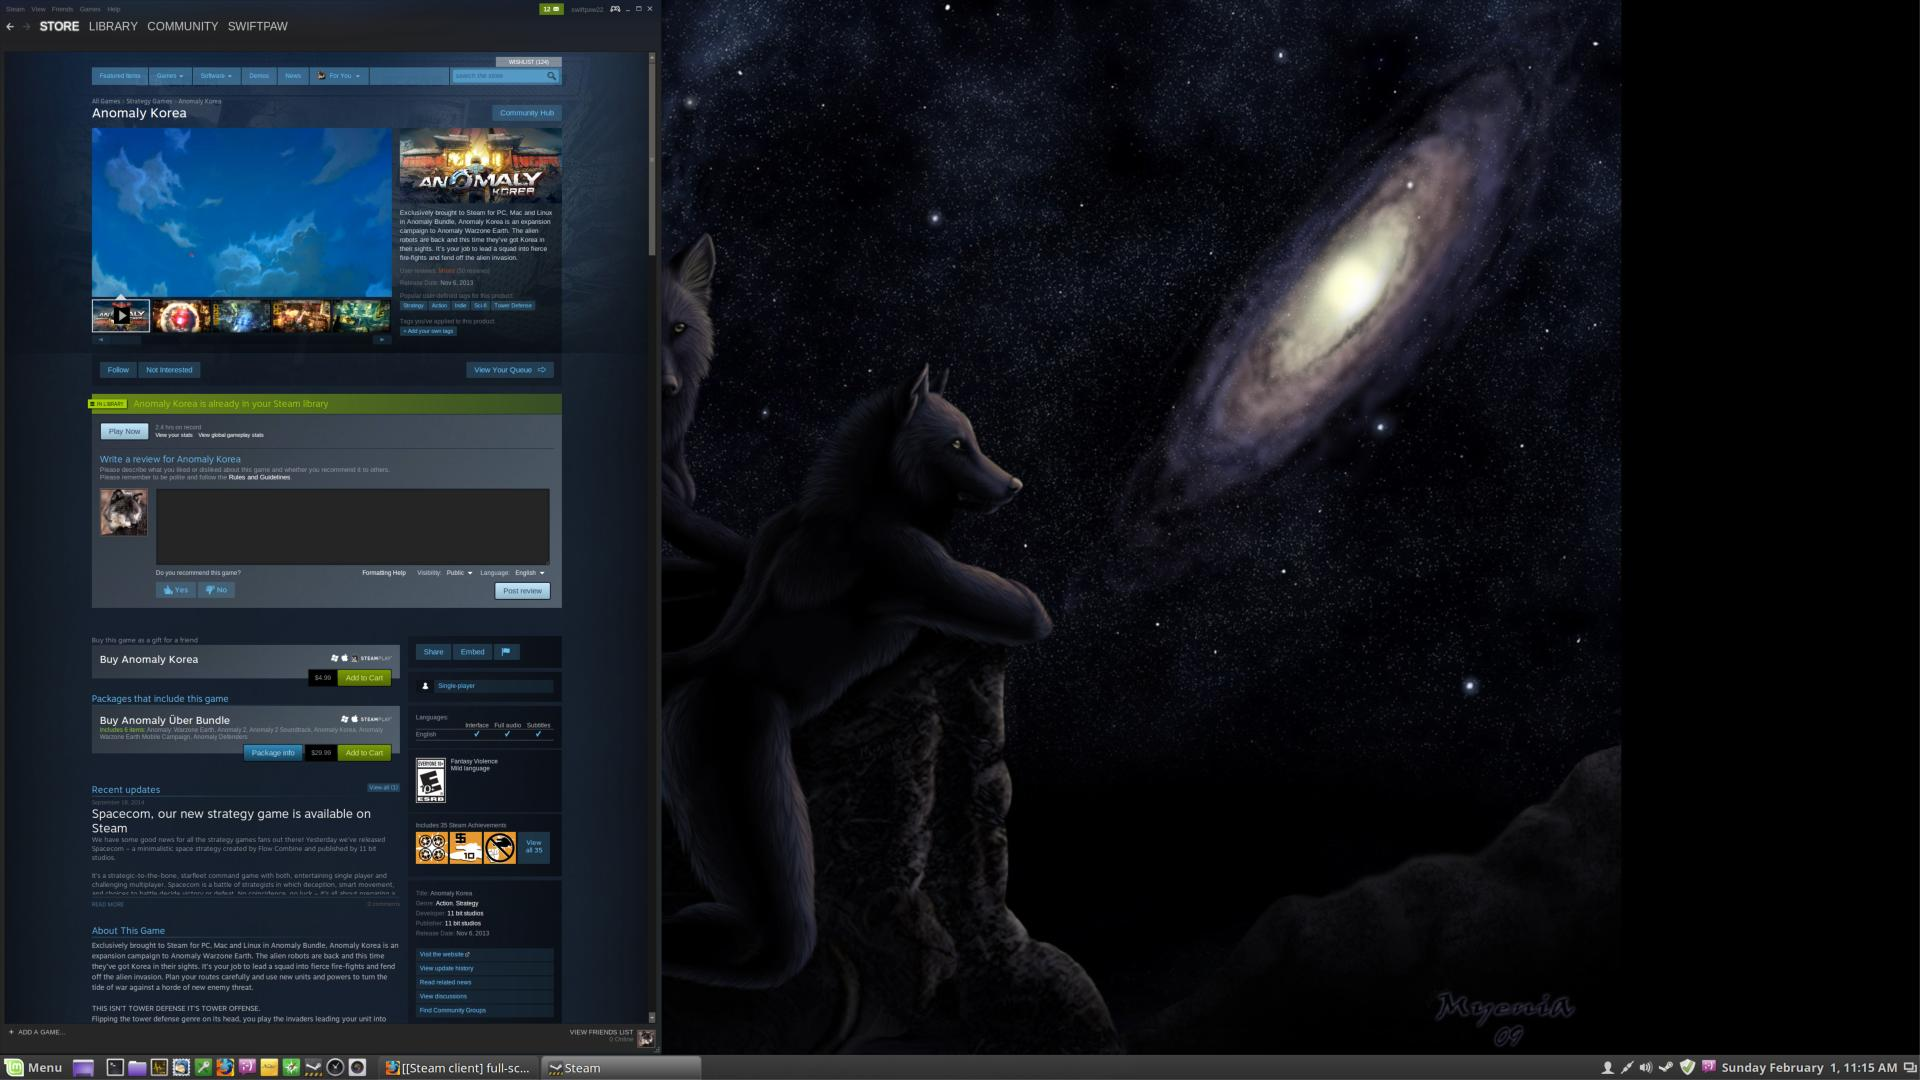 Steam client] full-screen videos play in bottom left of